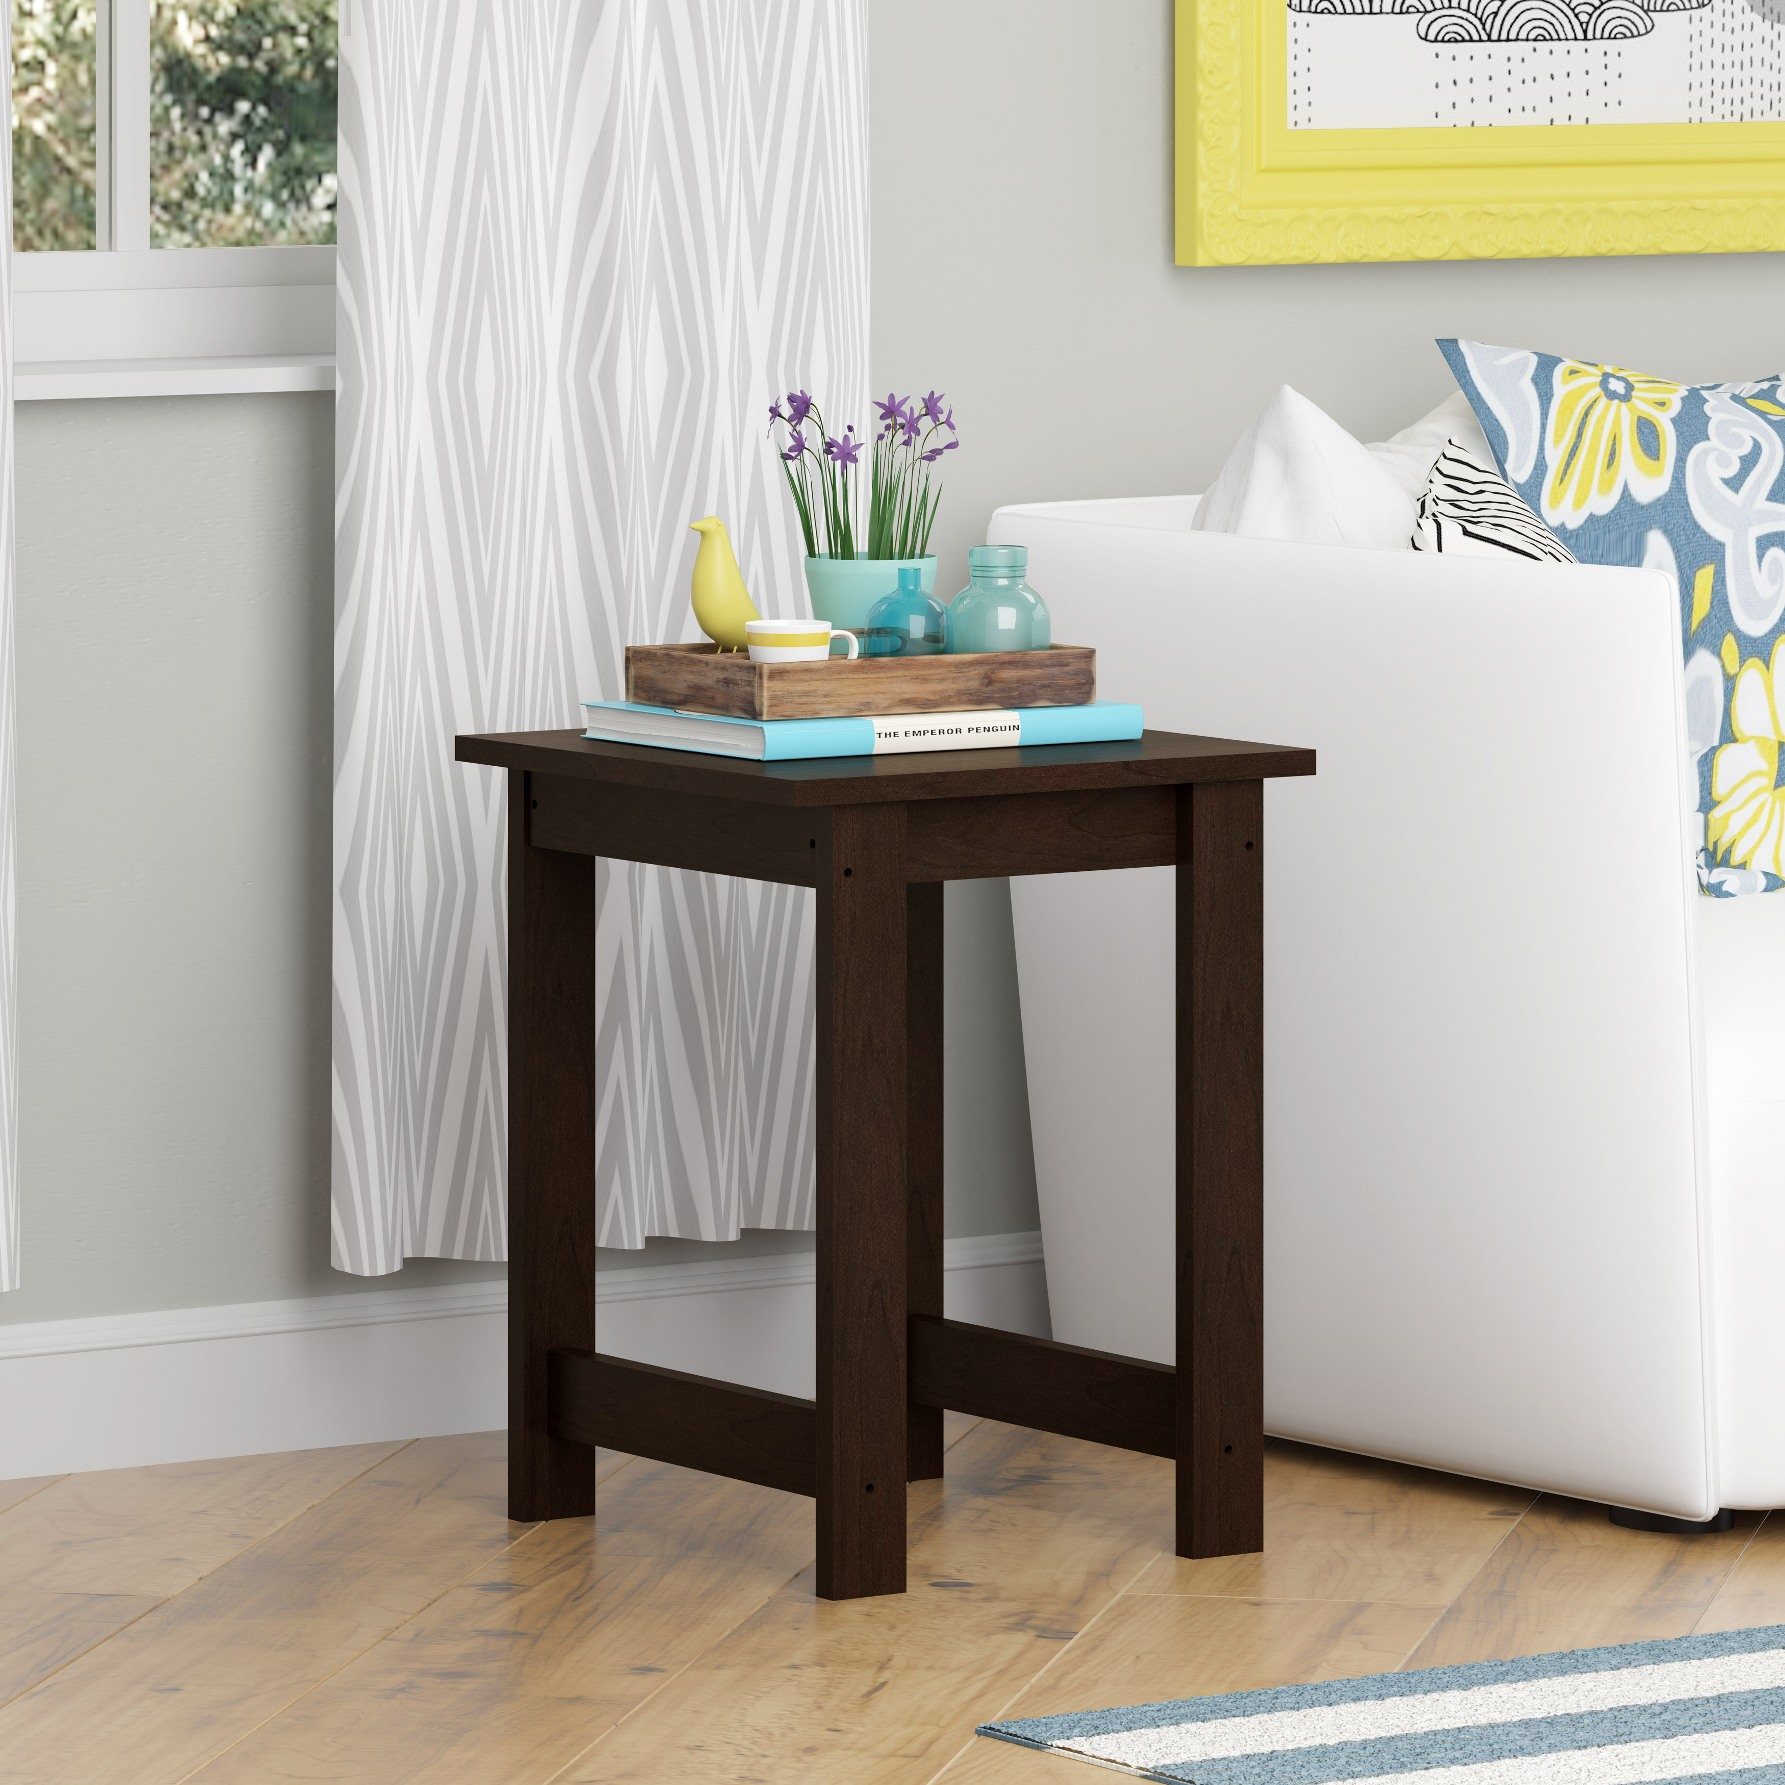 & Good To Go Side Table - Cherry